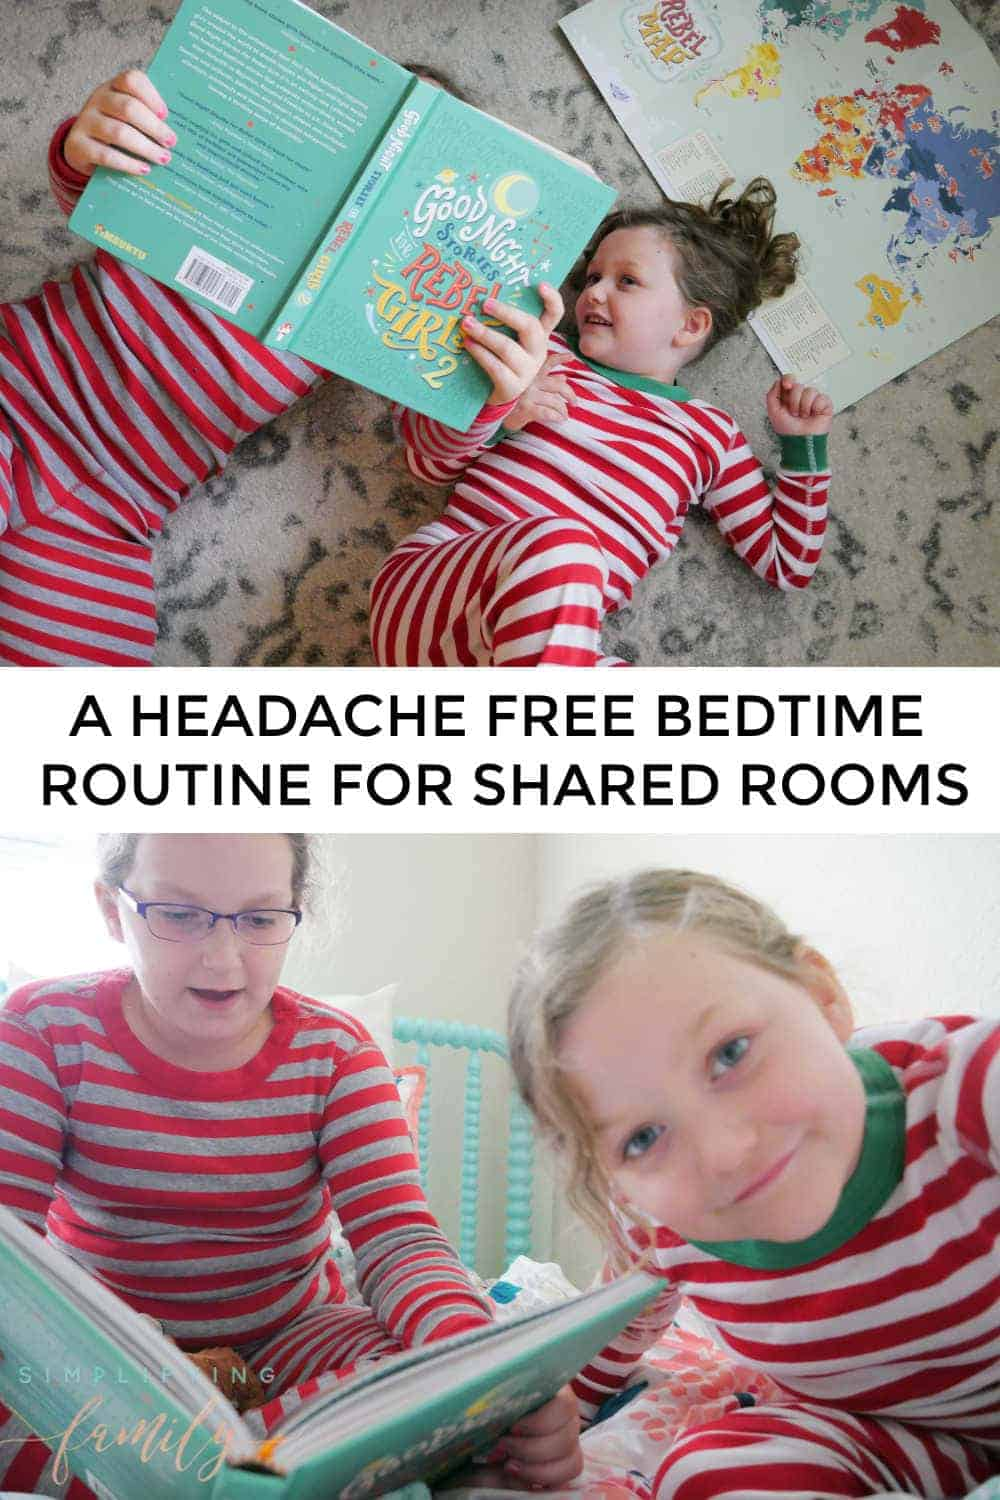 Sharing a bedroom can be a positive experience for everyone with a few simple tweaks. Here is our headache free bedtime routine we use with our girls who share a room. Including one of our favorite book of bedtime stories. via @simplifyingfamily